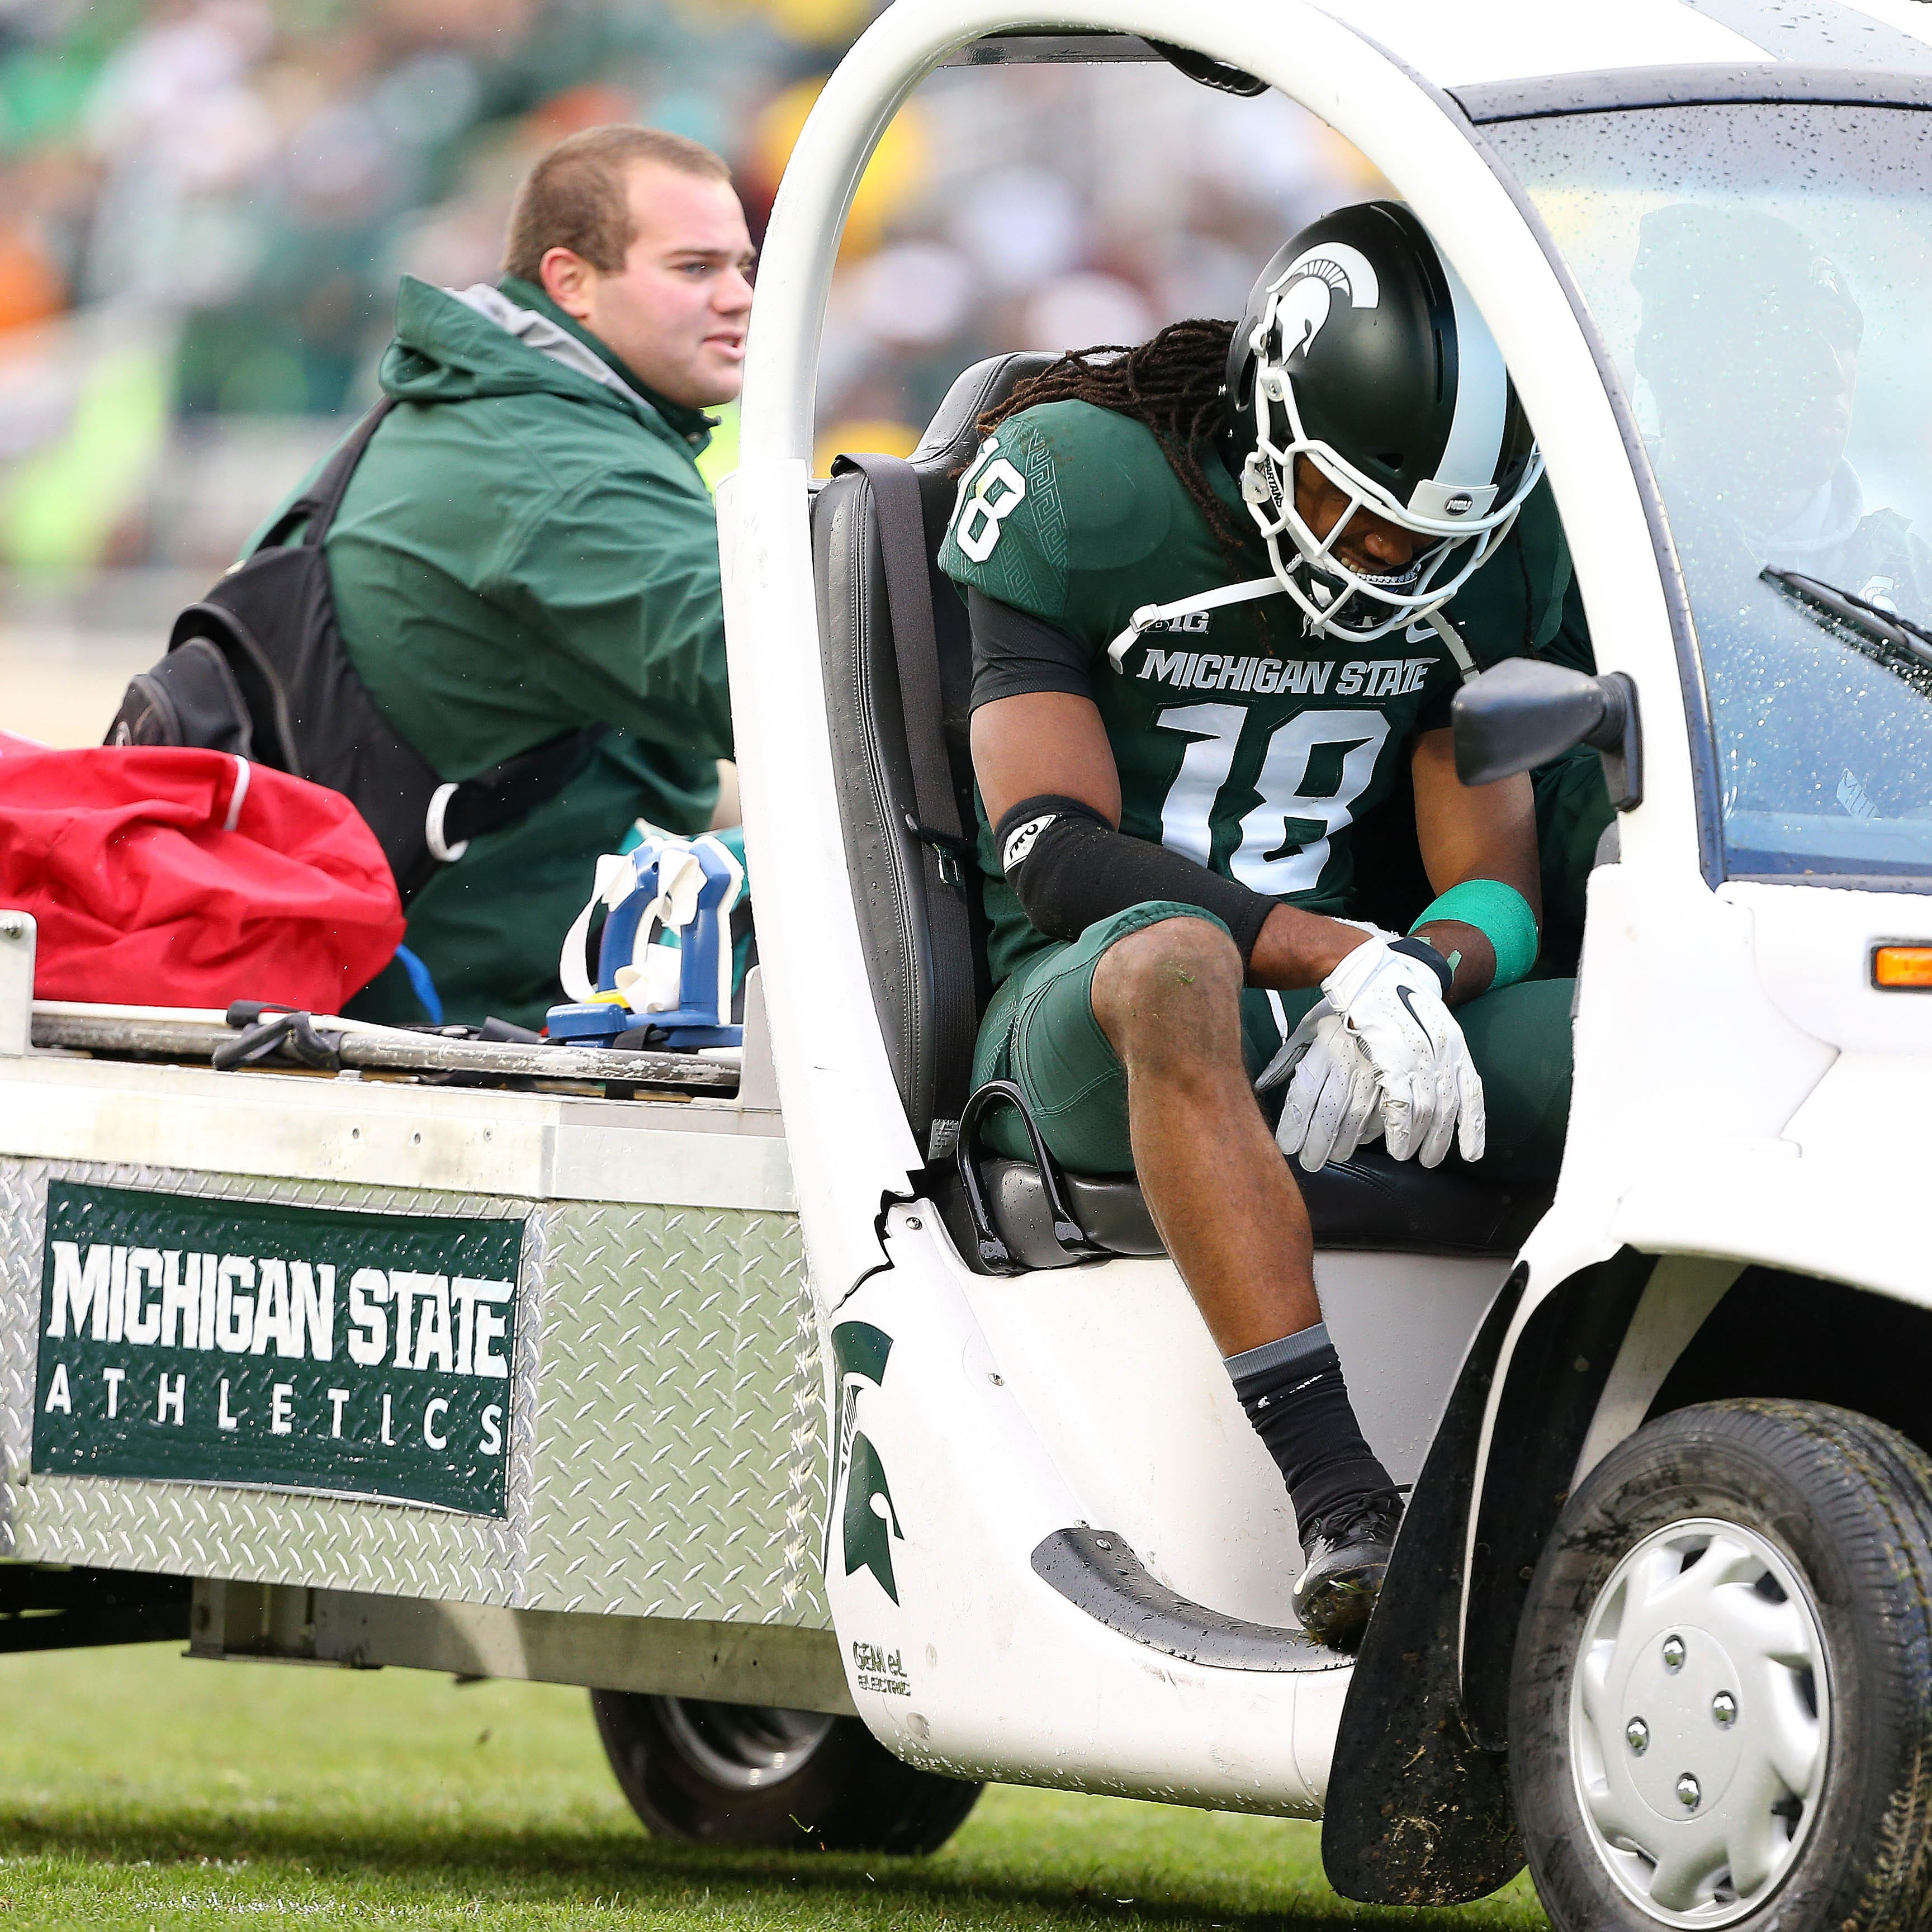 Michigan State receiver Felton Davis injured in Michigan football game